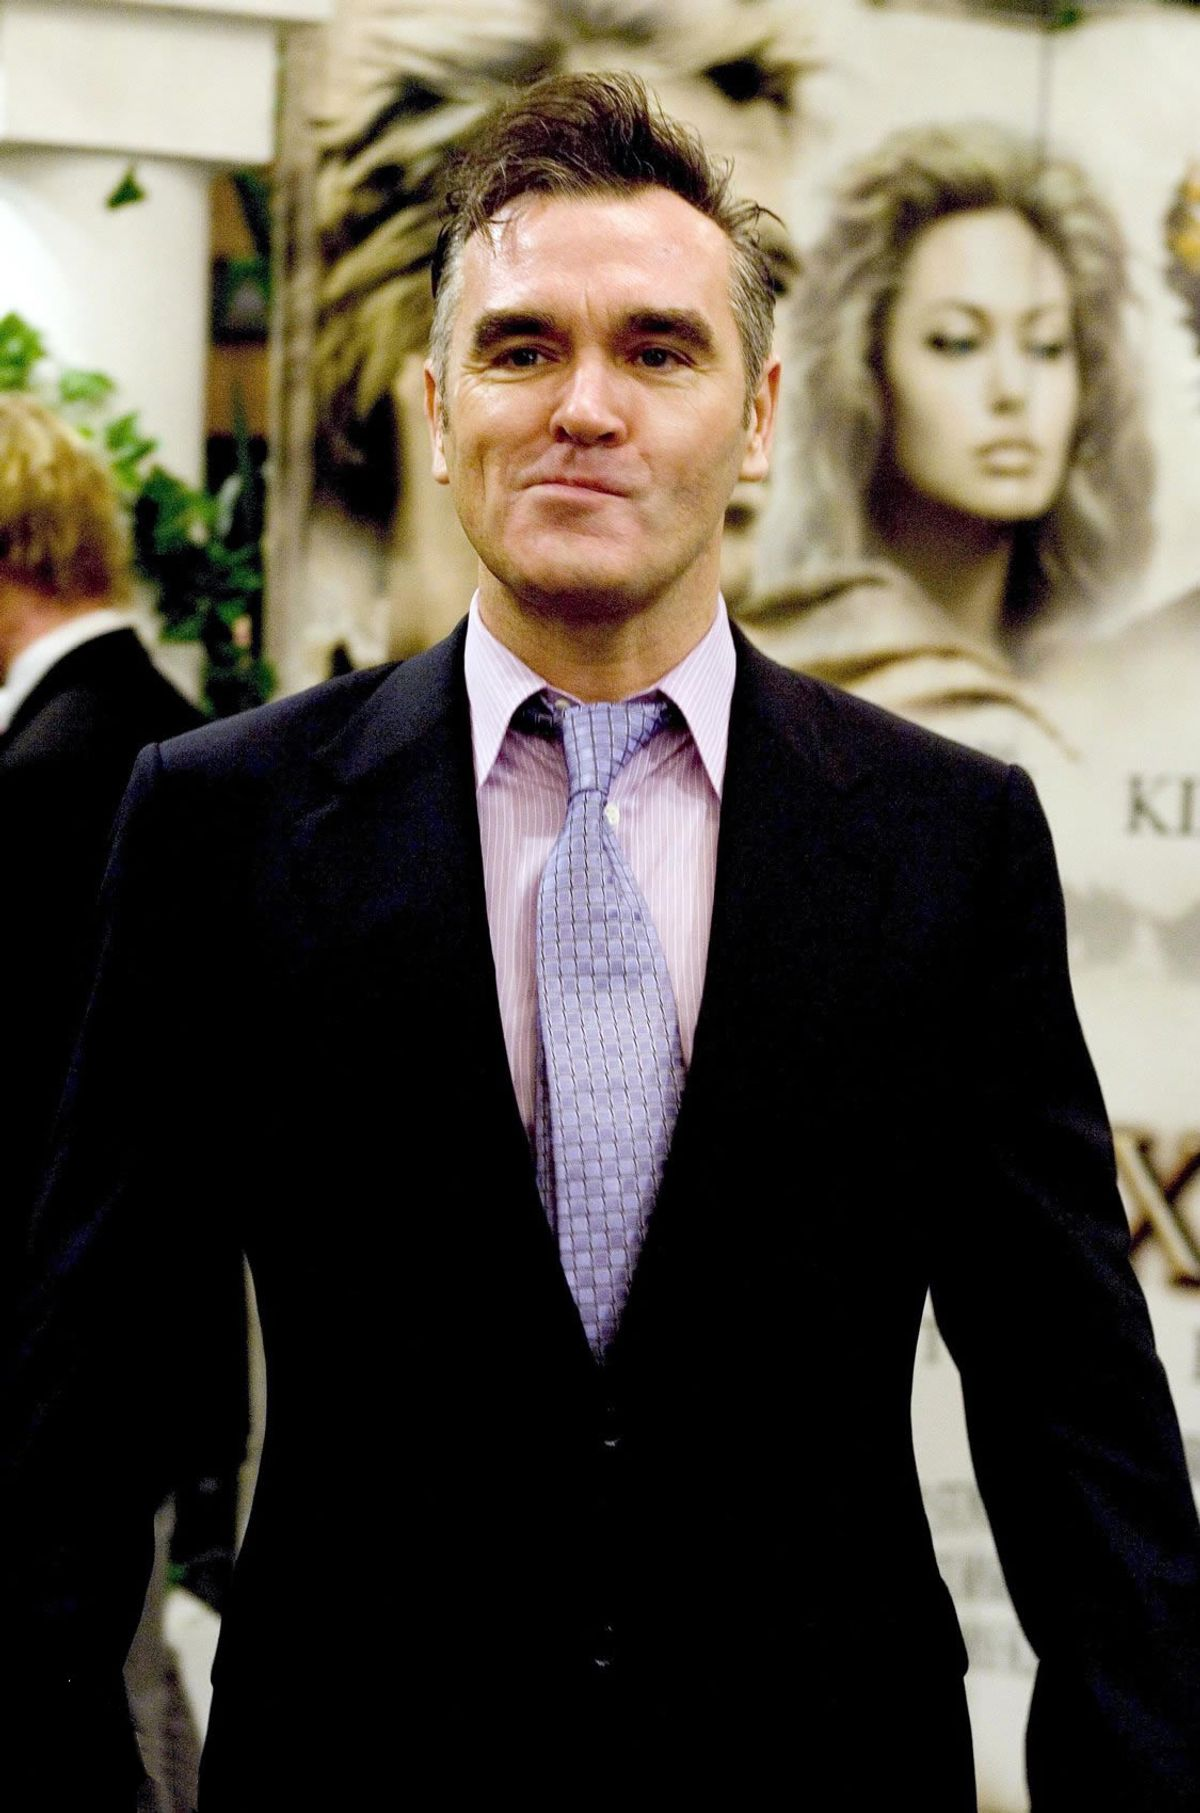 Really, Morrissey?